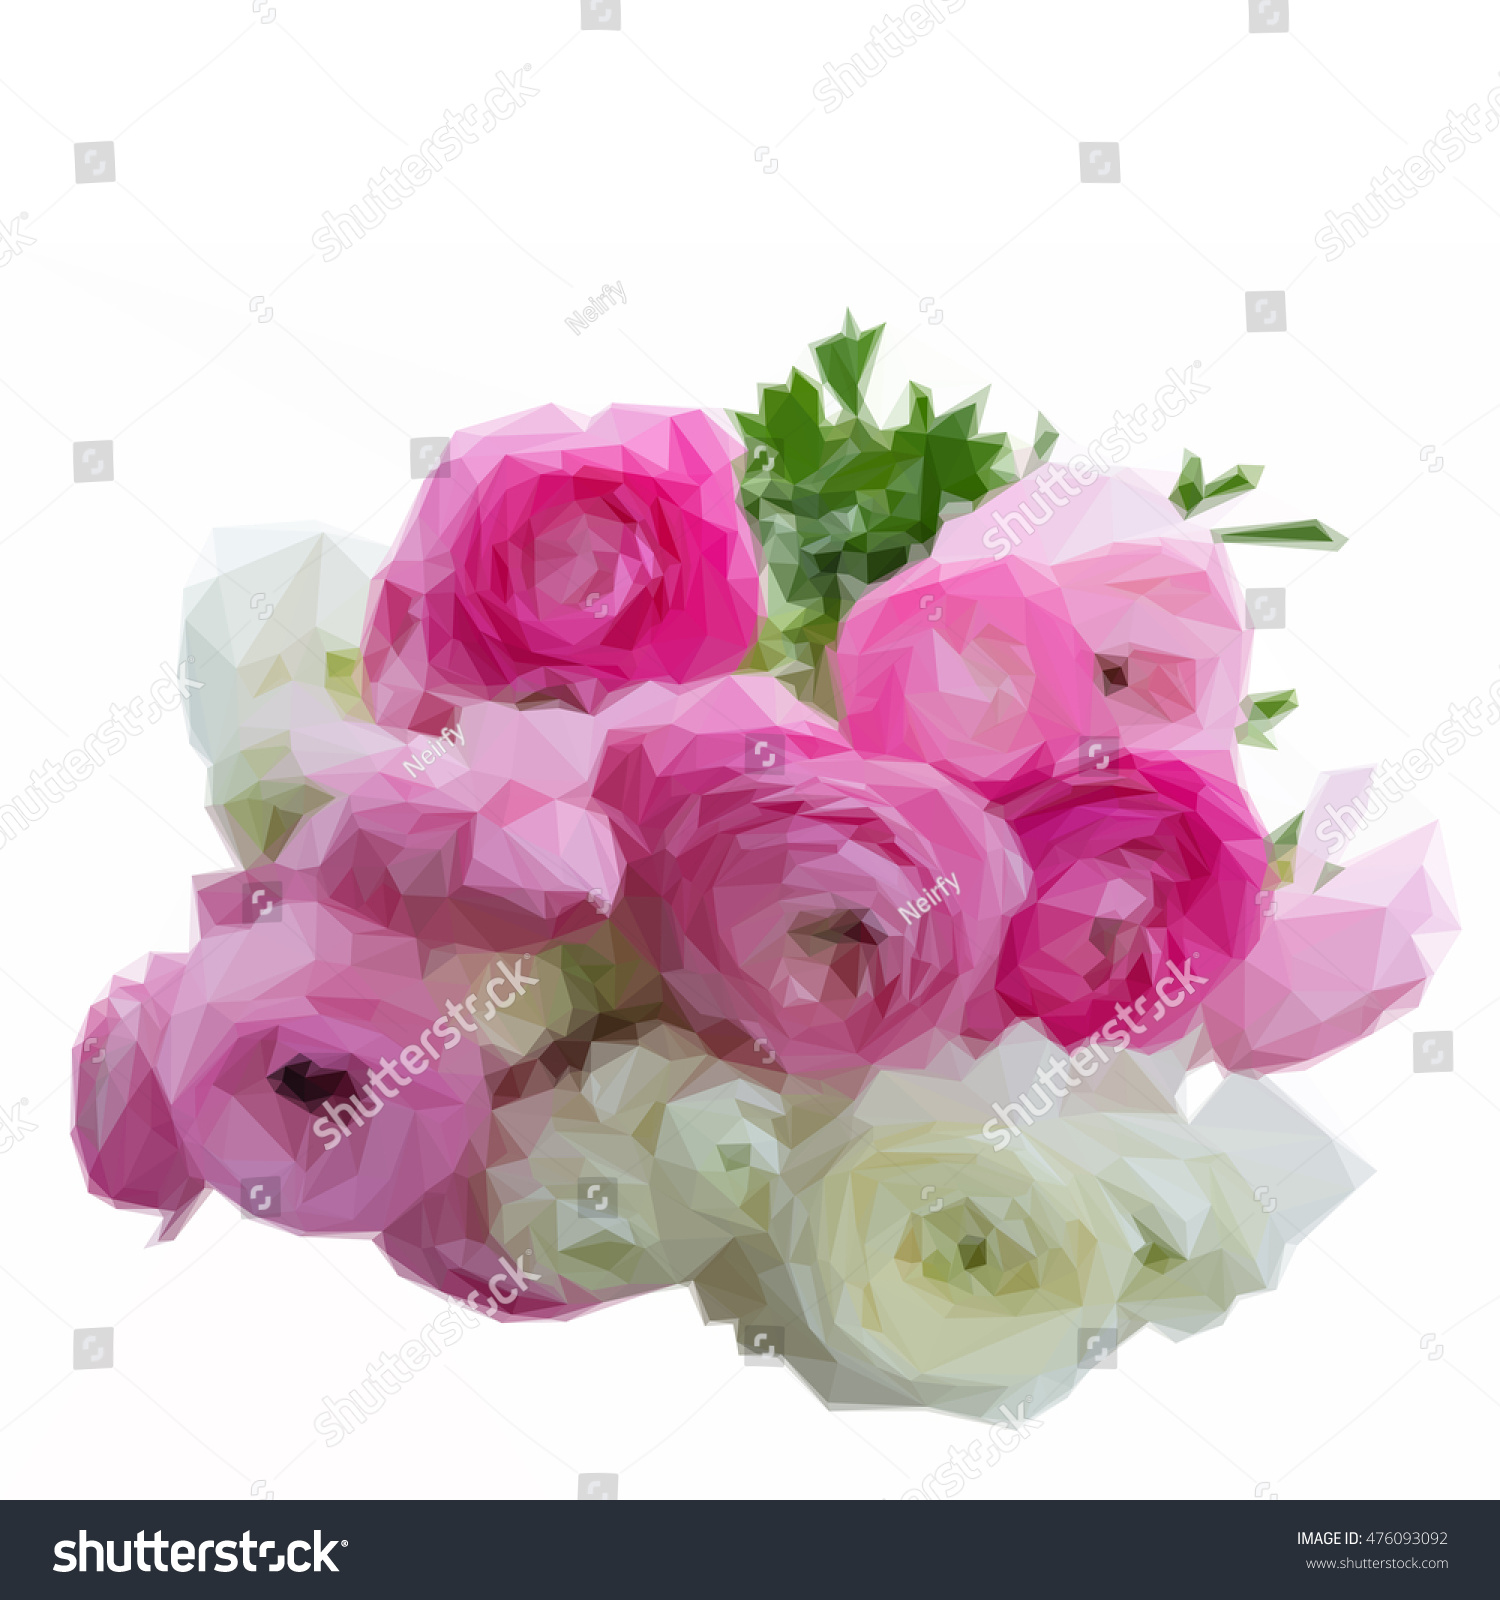 Low Poly Illustration Pile Of Pink And White Ranunculus Flowers Ez